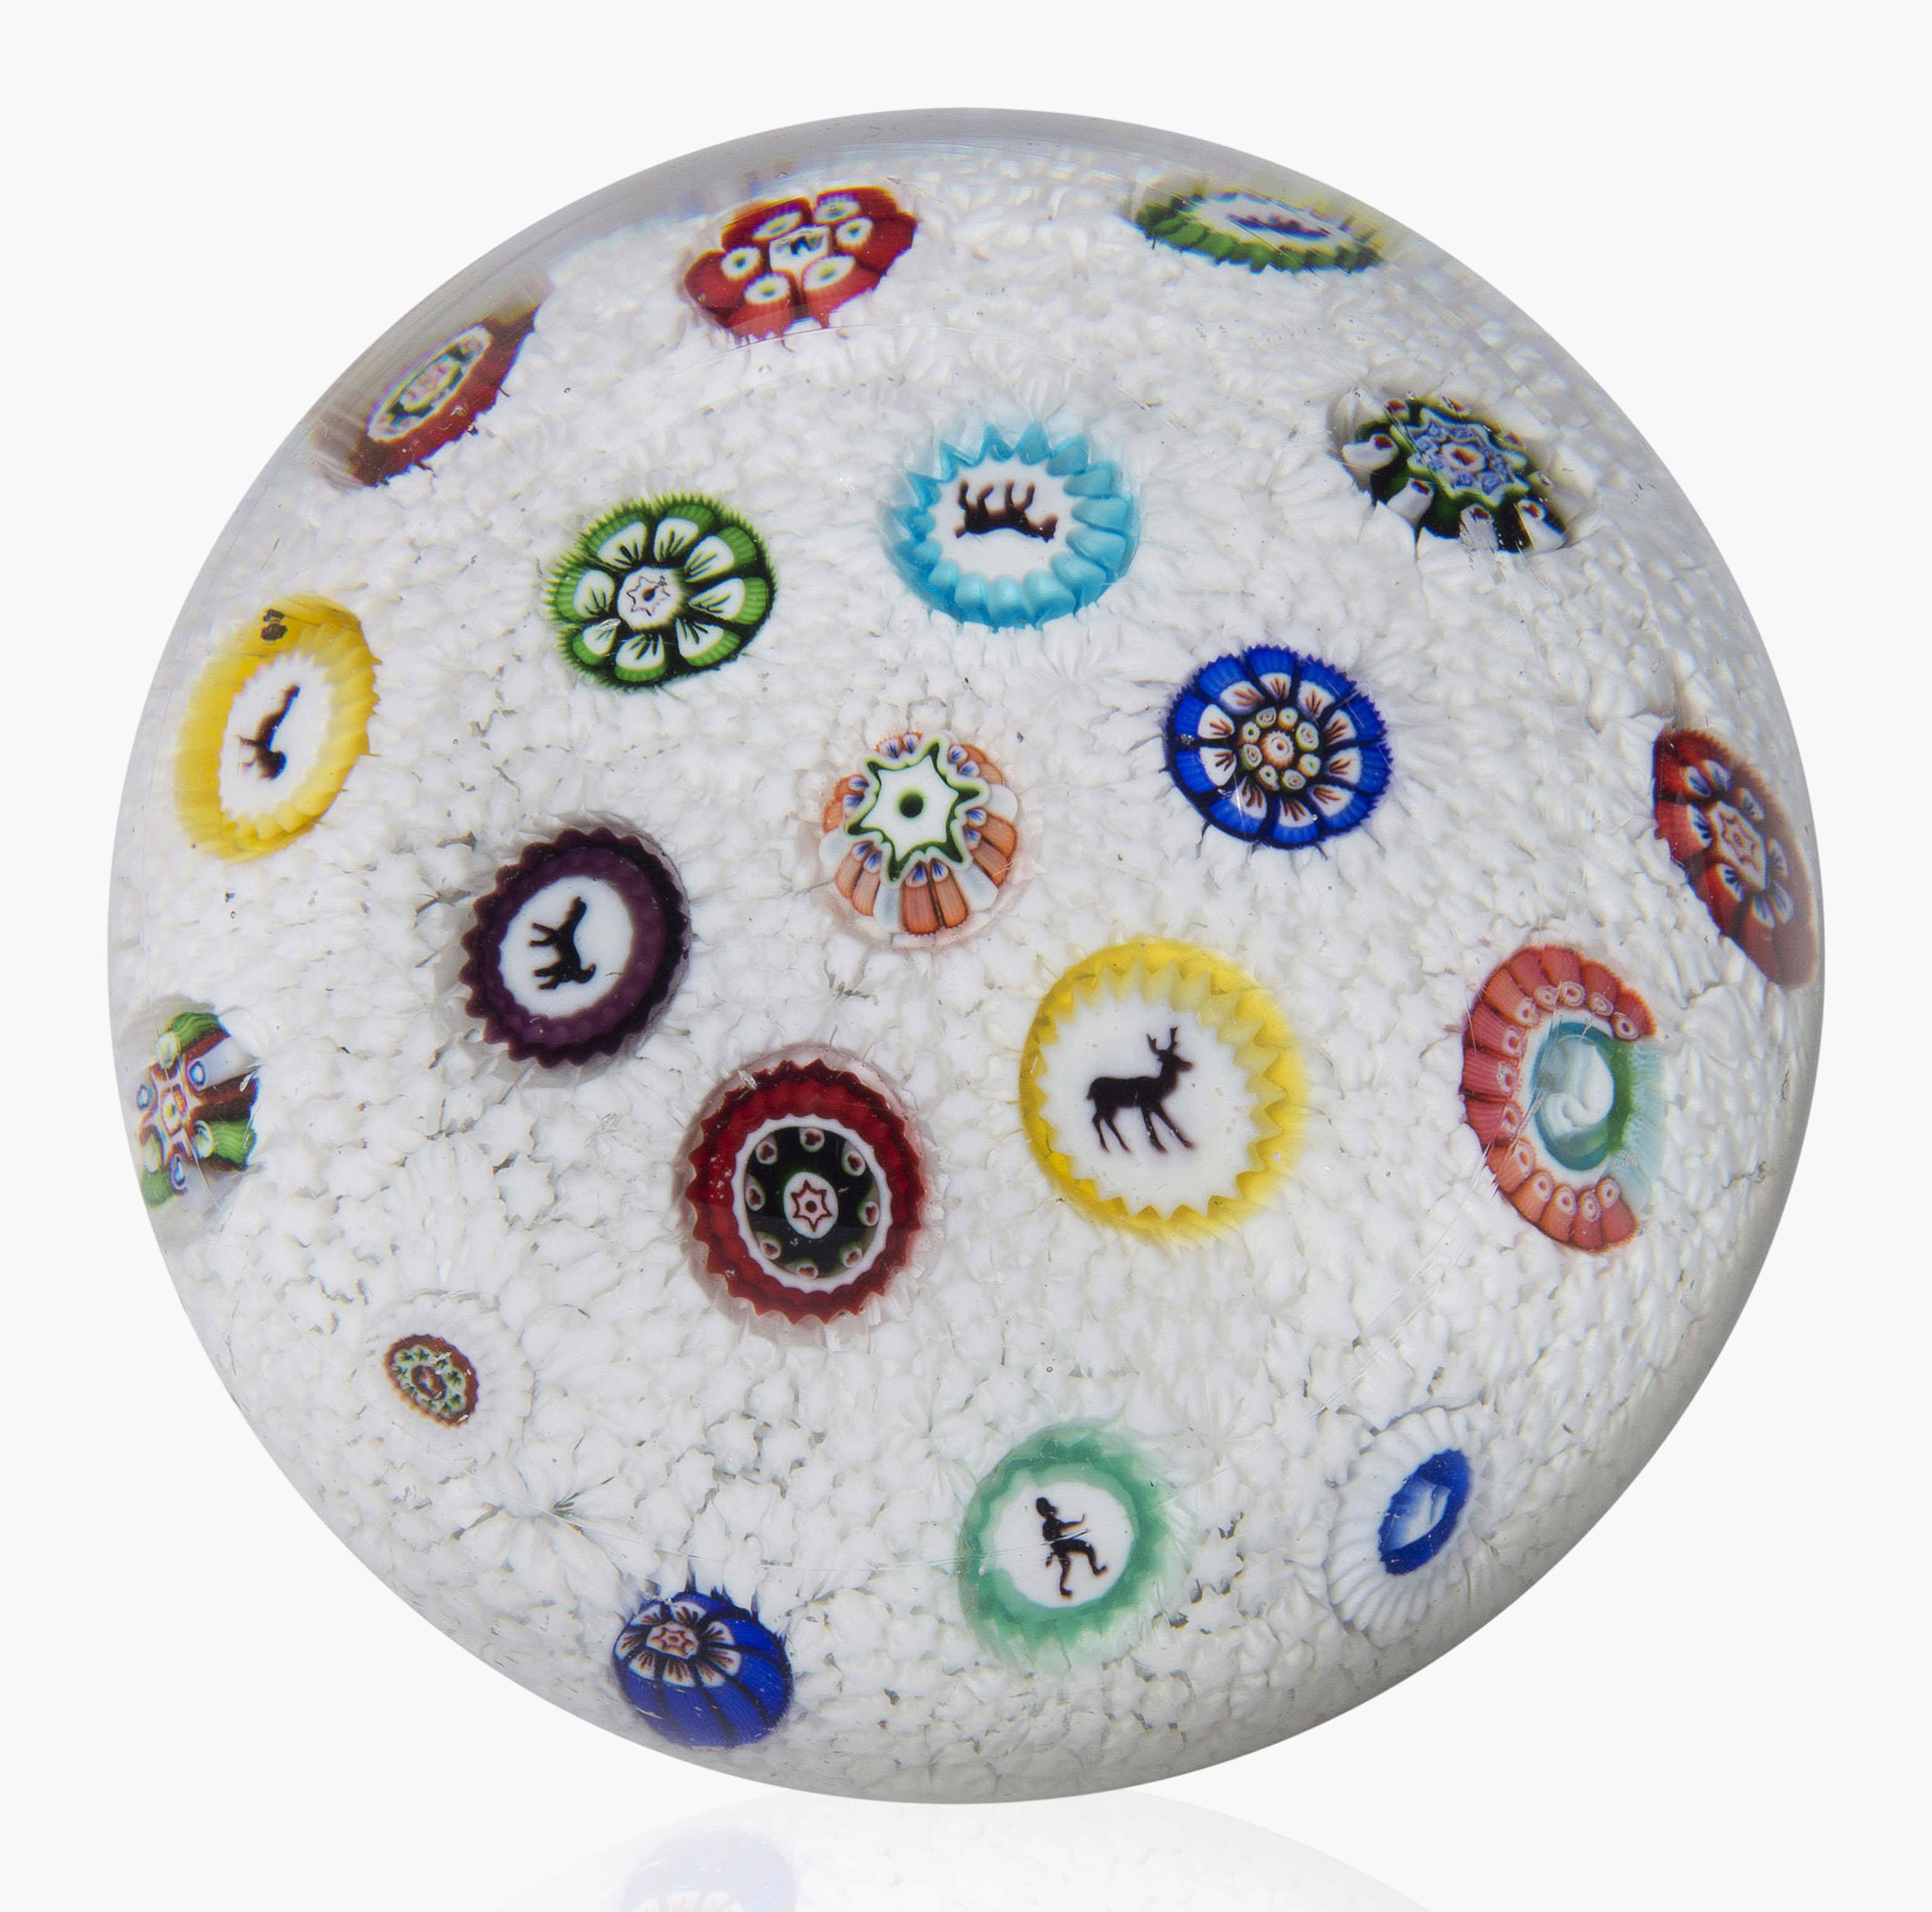 Baccarat paperweight prices roulette wheel to buy in uk